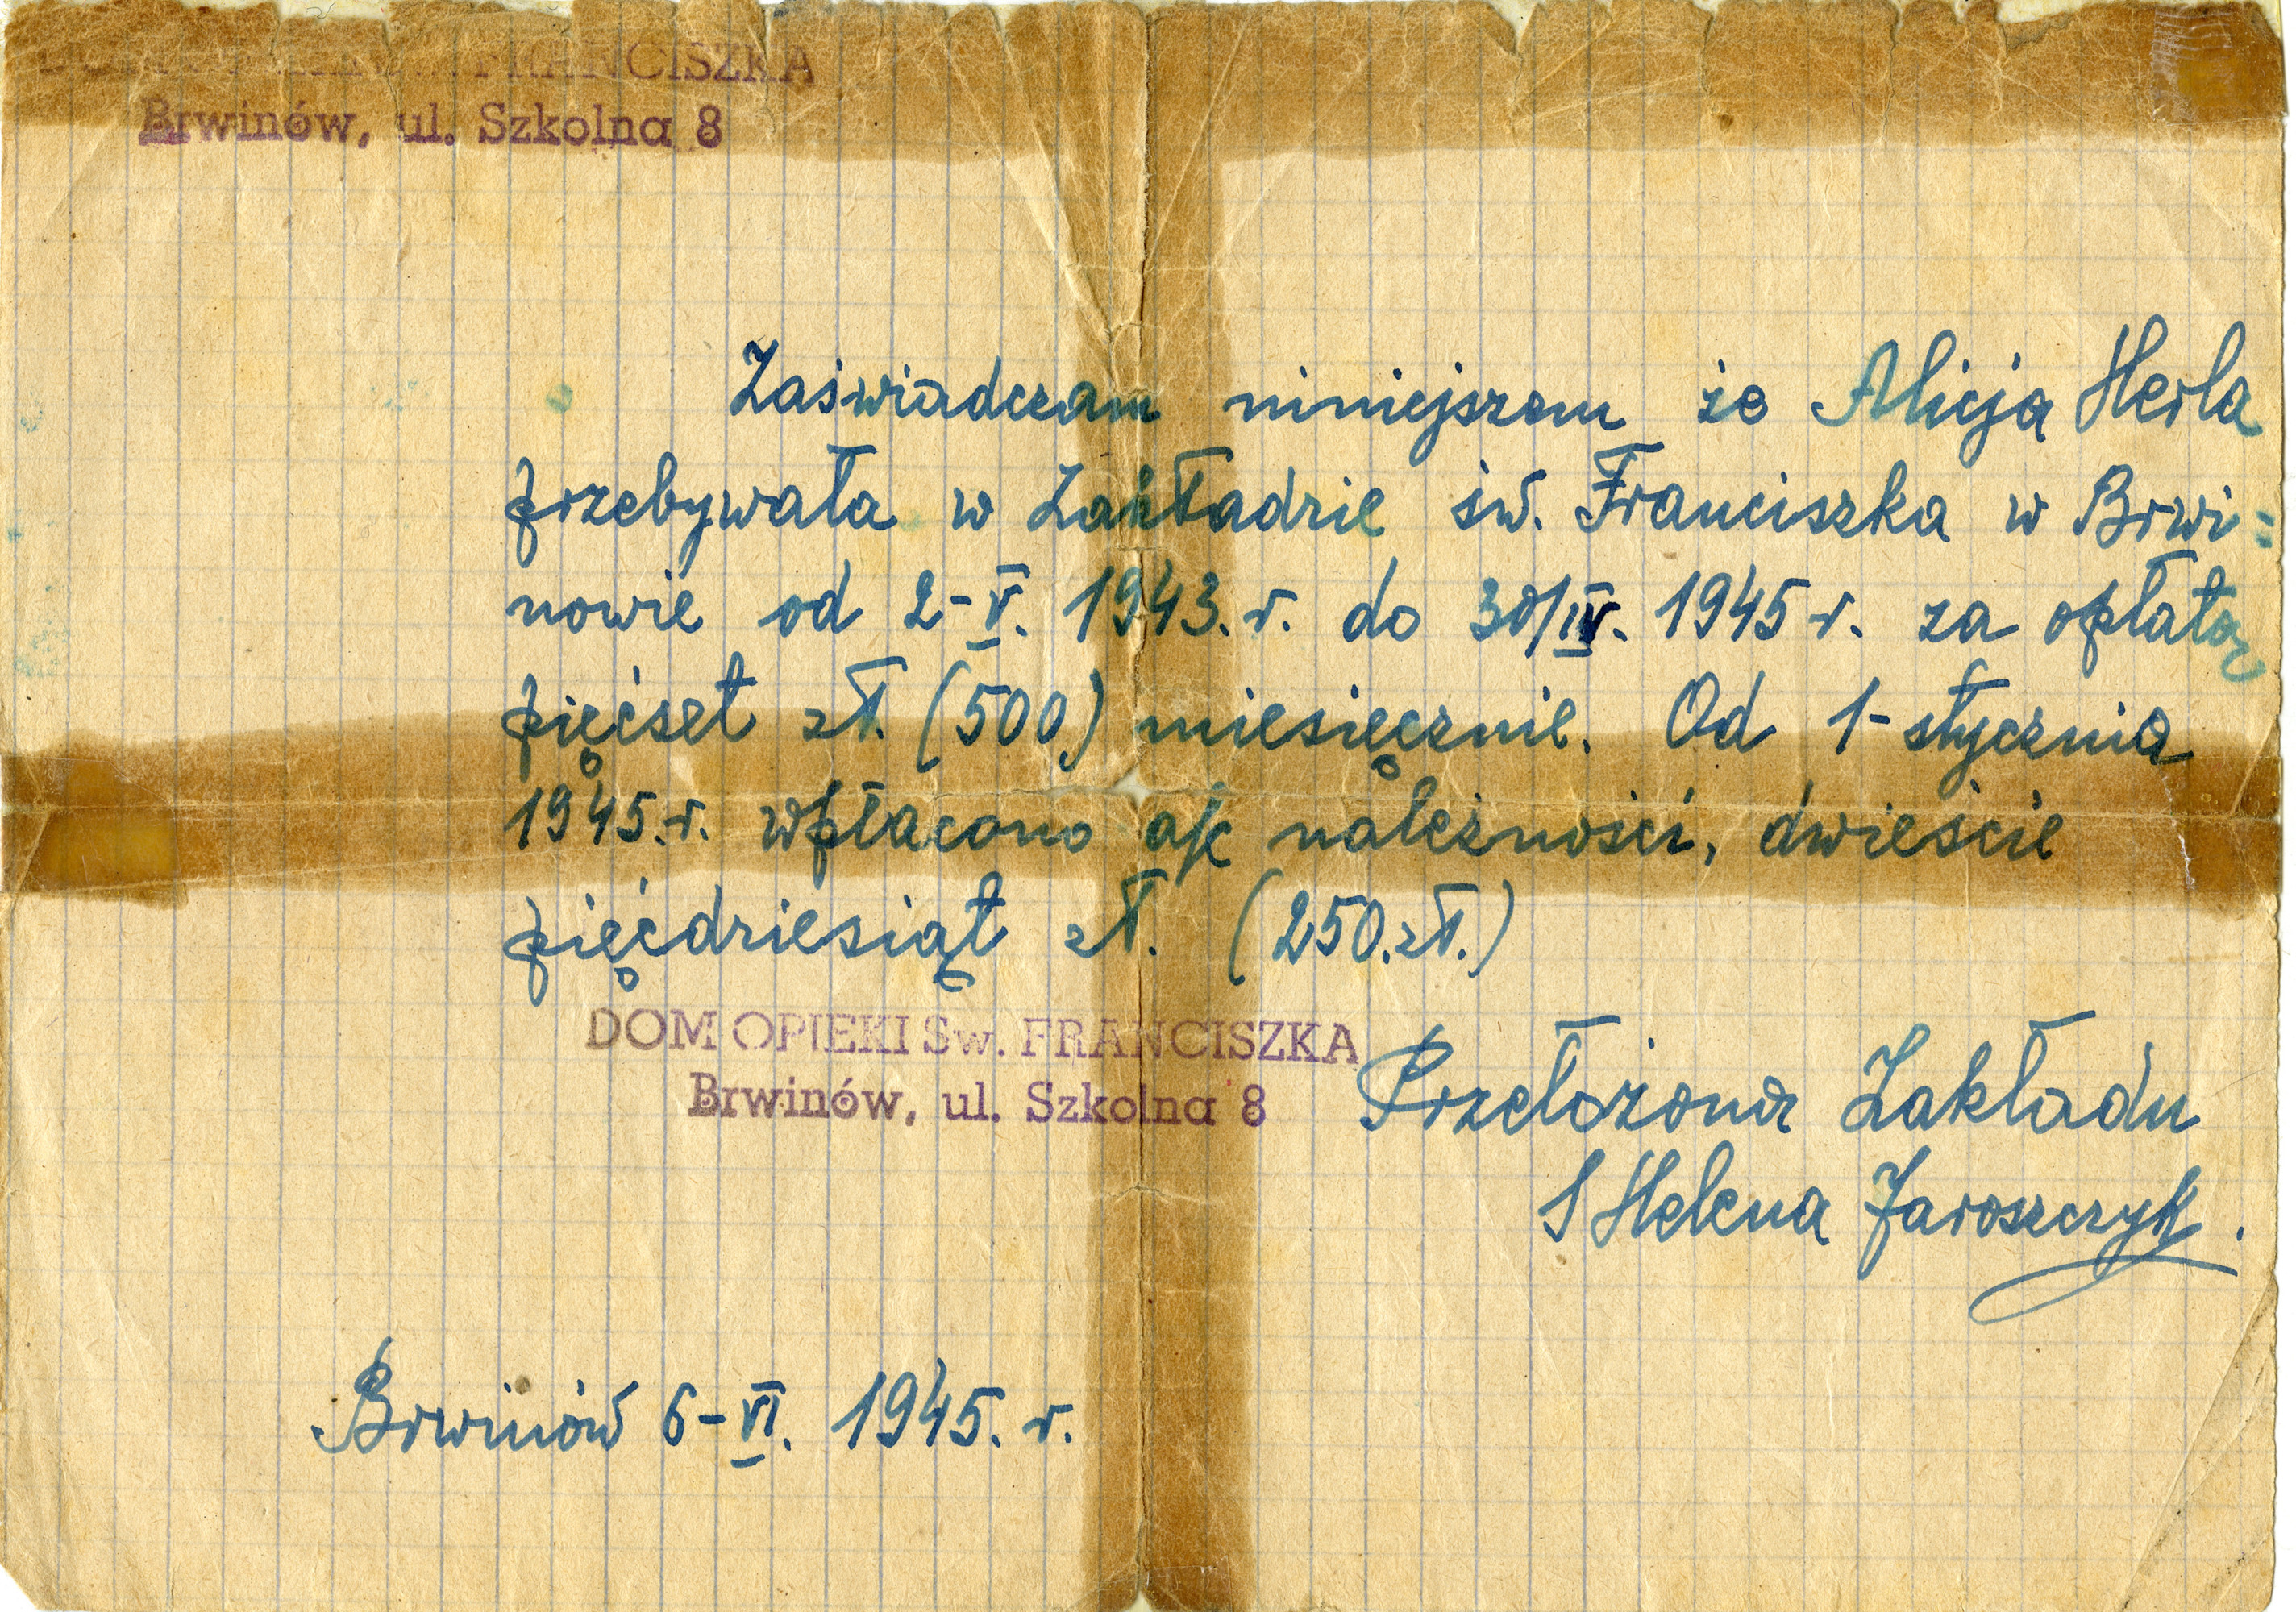 Document stating that the Polish underground paid 500 zlotys per month to the monastery in Brwinow from 5/2/1943 to 4/30/1945, for the care of Alicja Herla (Leah Alterman).